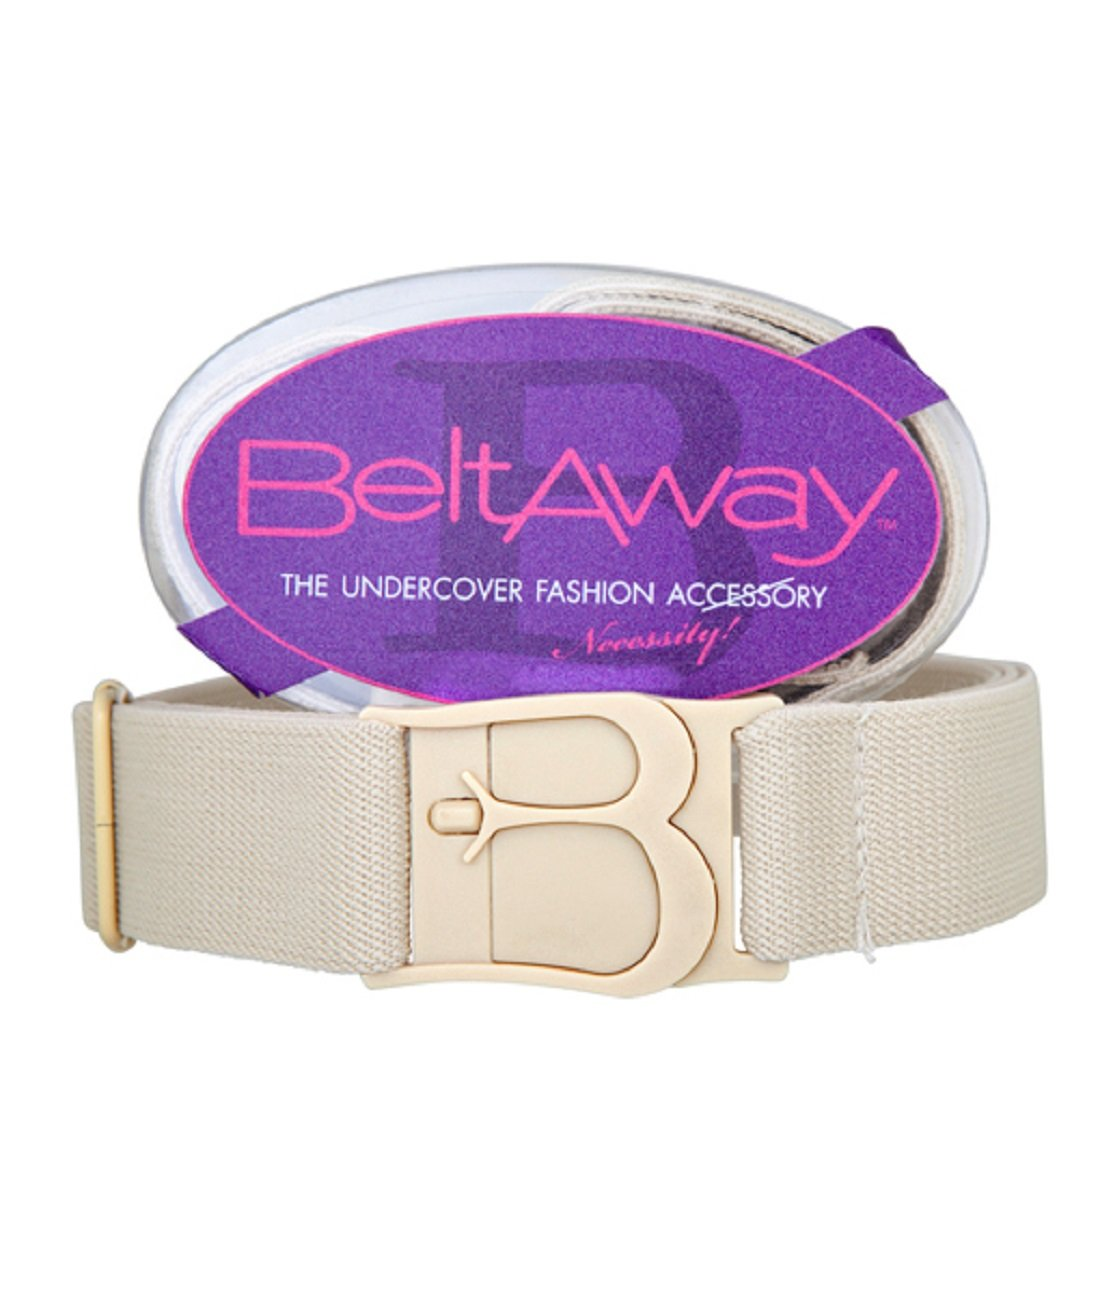 Beltaway Women's Plus Size Flat Buckle Belt One Size (16-4X) (Sand)